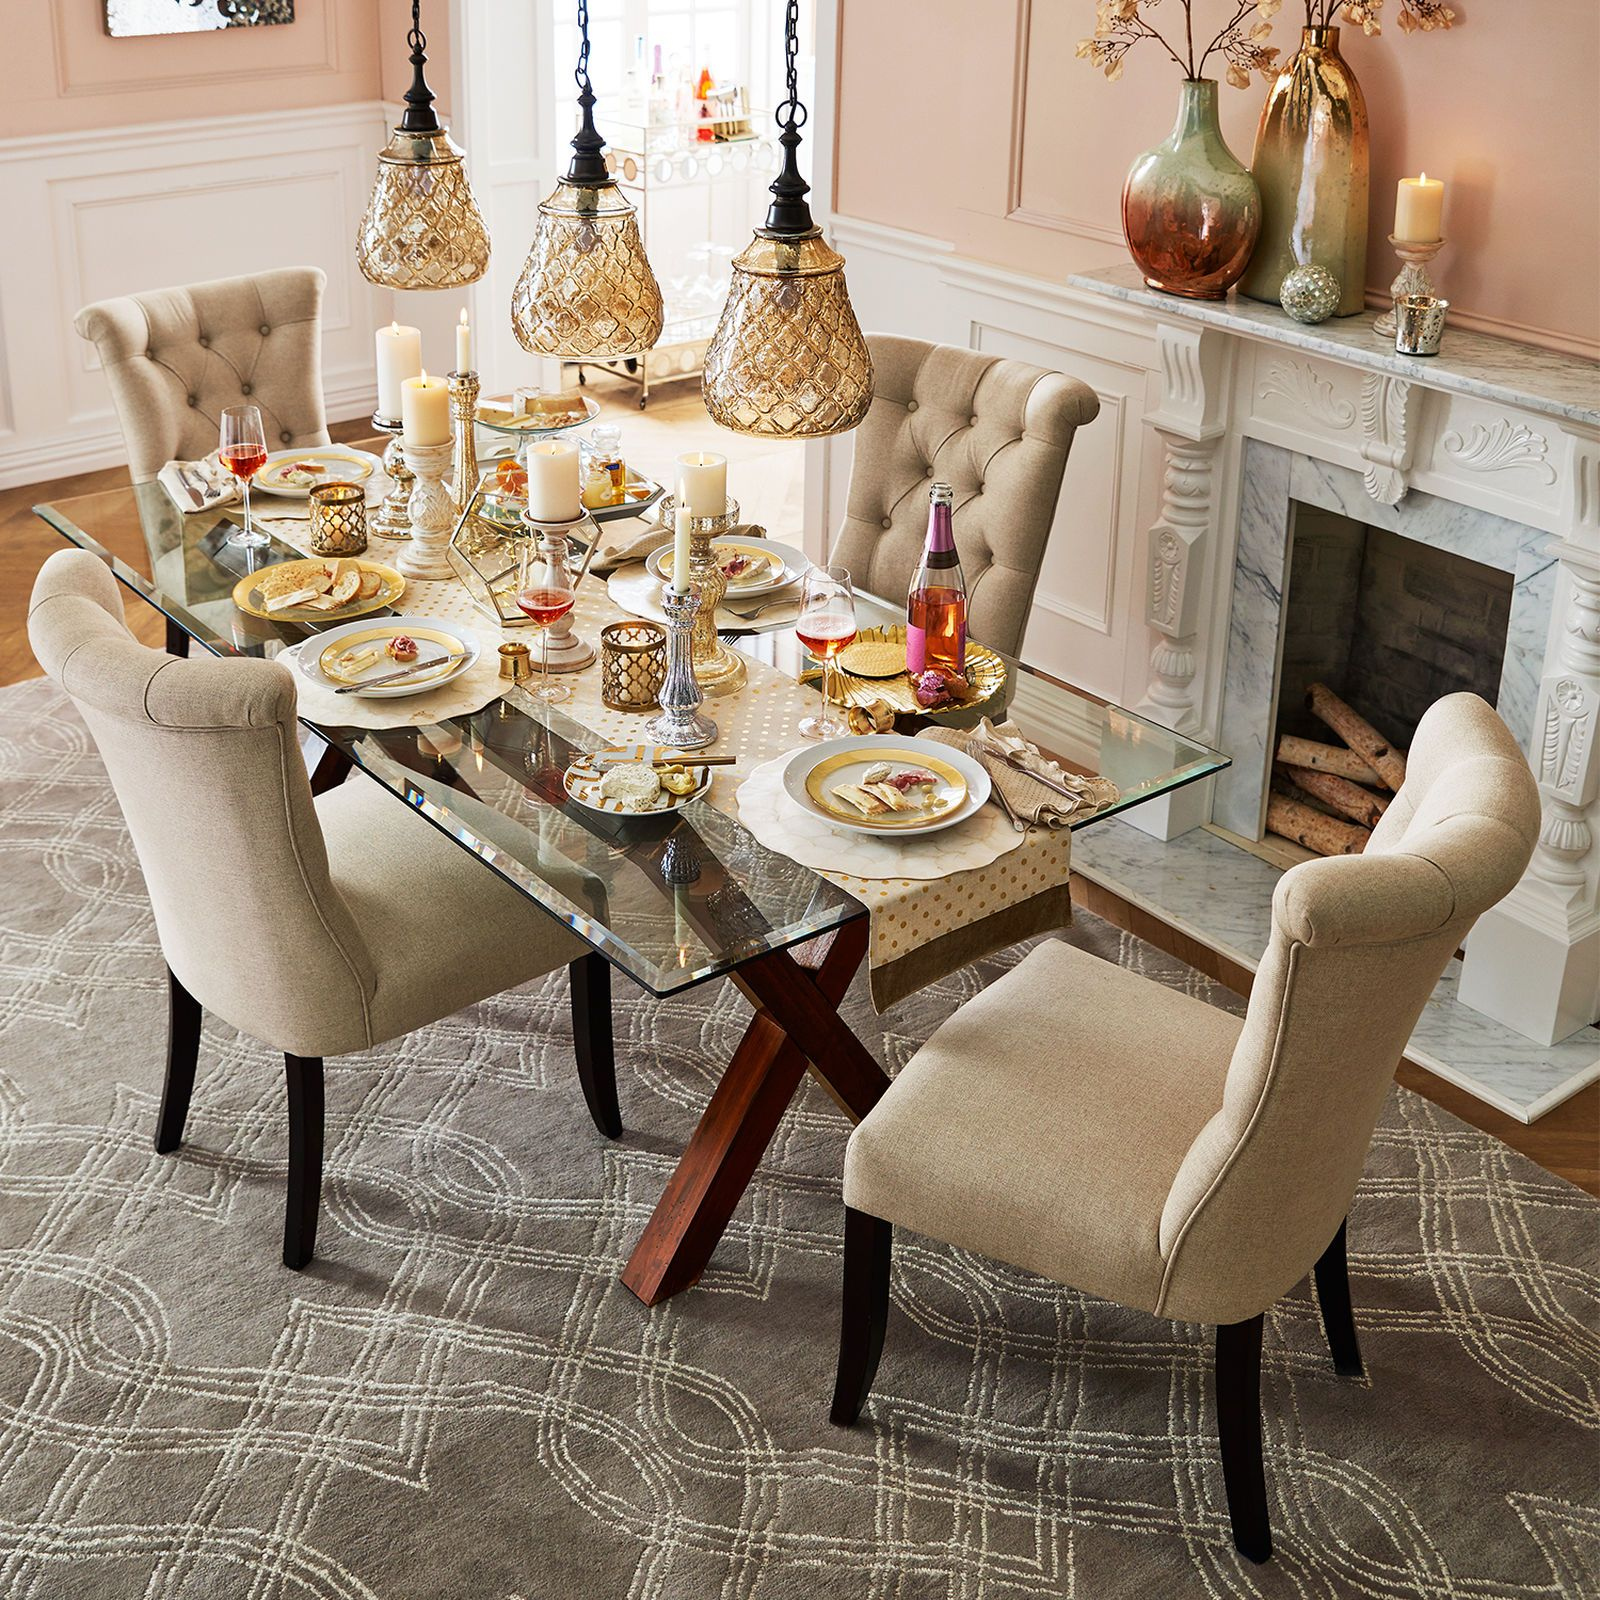 Start With Pier Bennett Dining Table Base And Our Rectangle Glass Table  Top, And Then Surround Your Table With Plenty Of Button Tufted ...